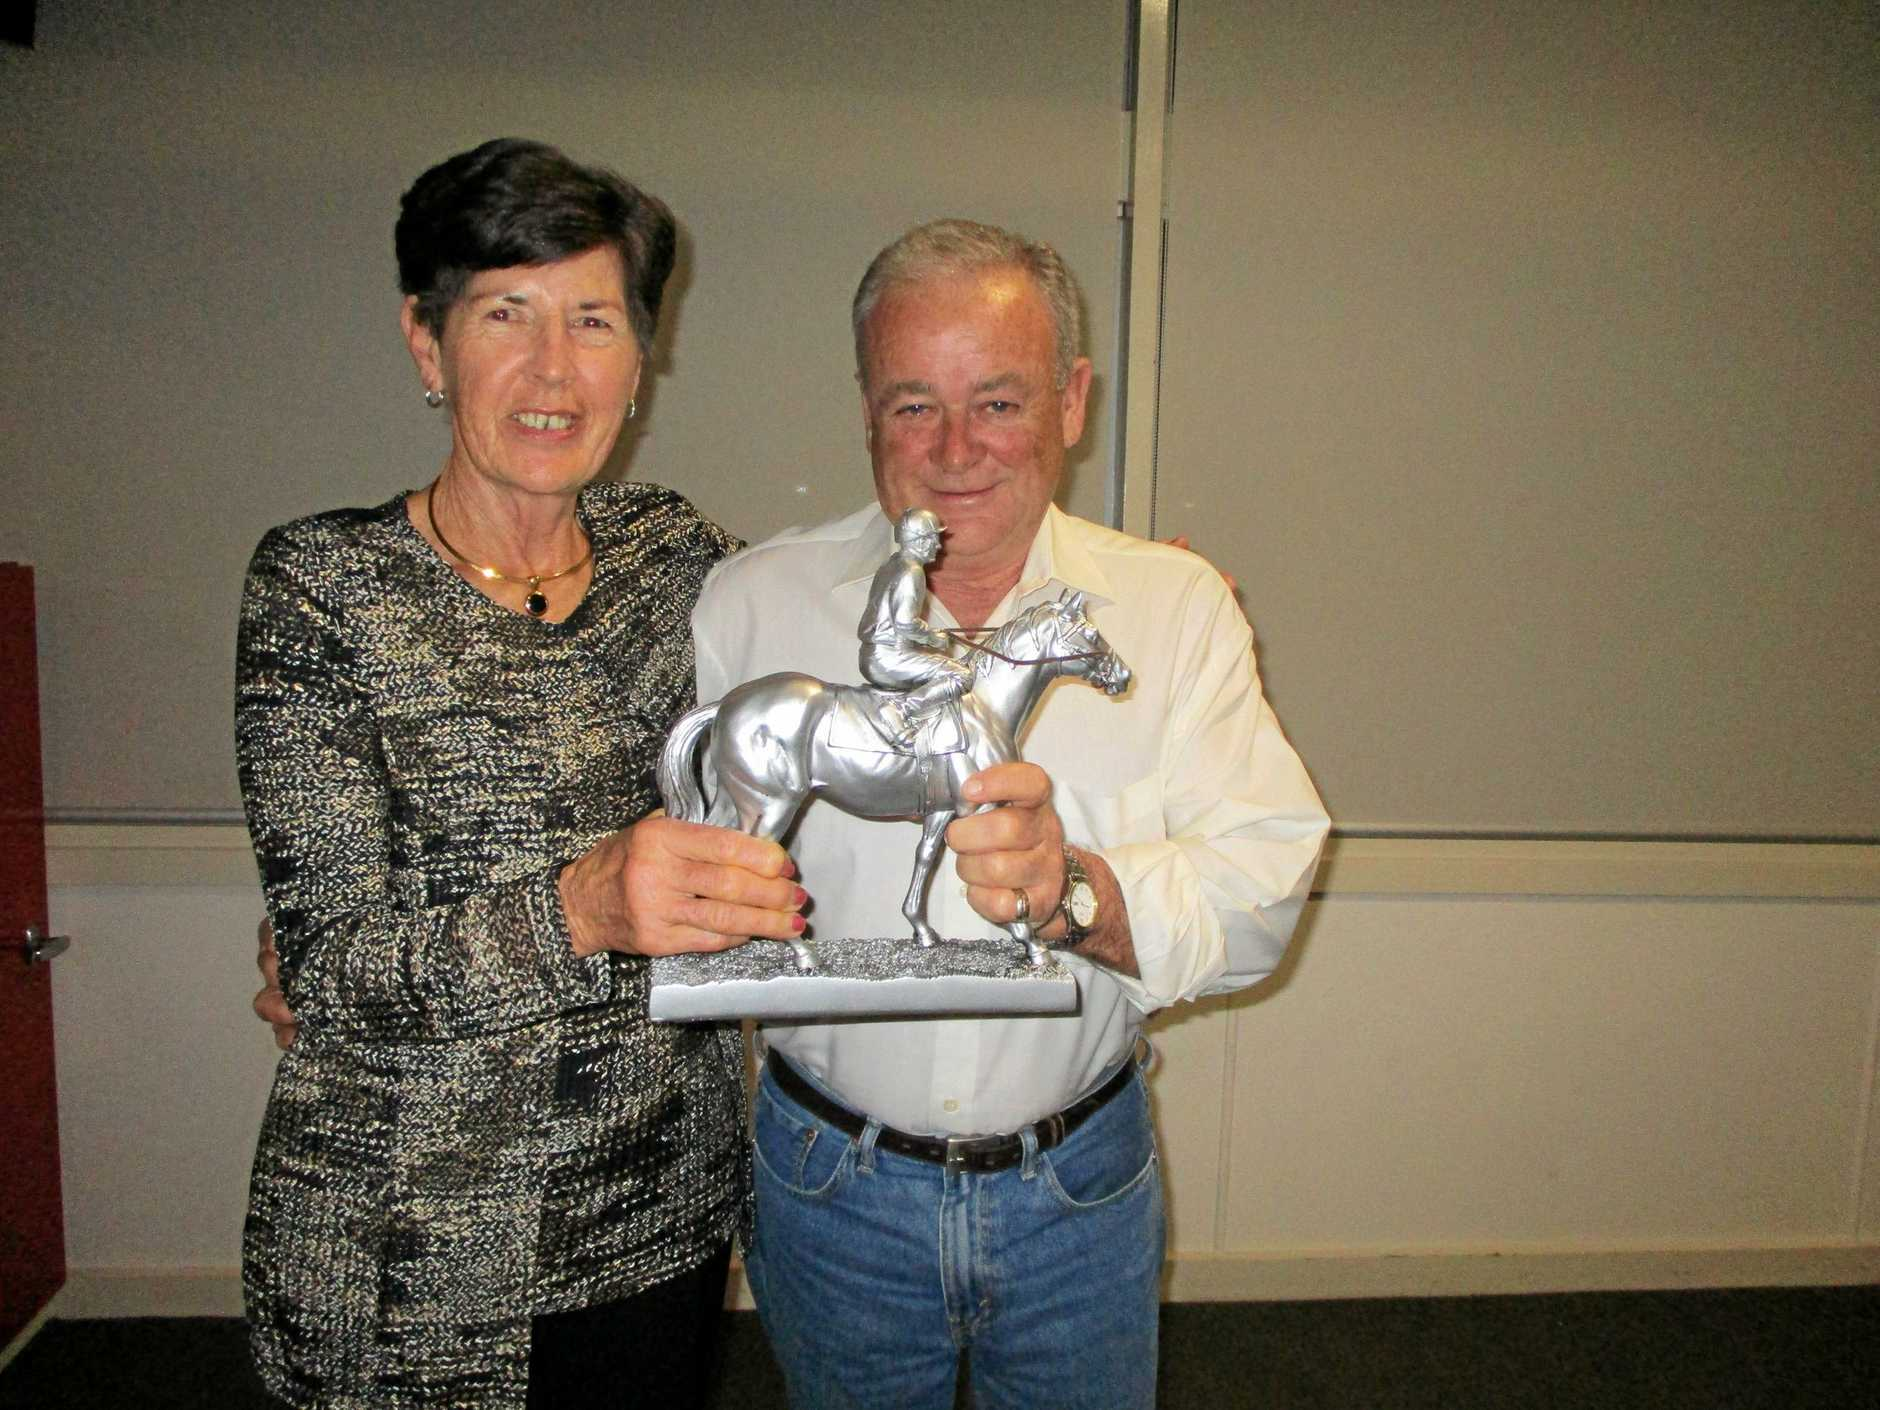 Grafton horse trainer John Shelton (right) accepts the Bob Gosling Memorial Award from the wife of the late Gosling, Lyn Gosling.